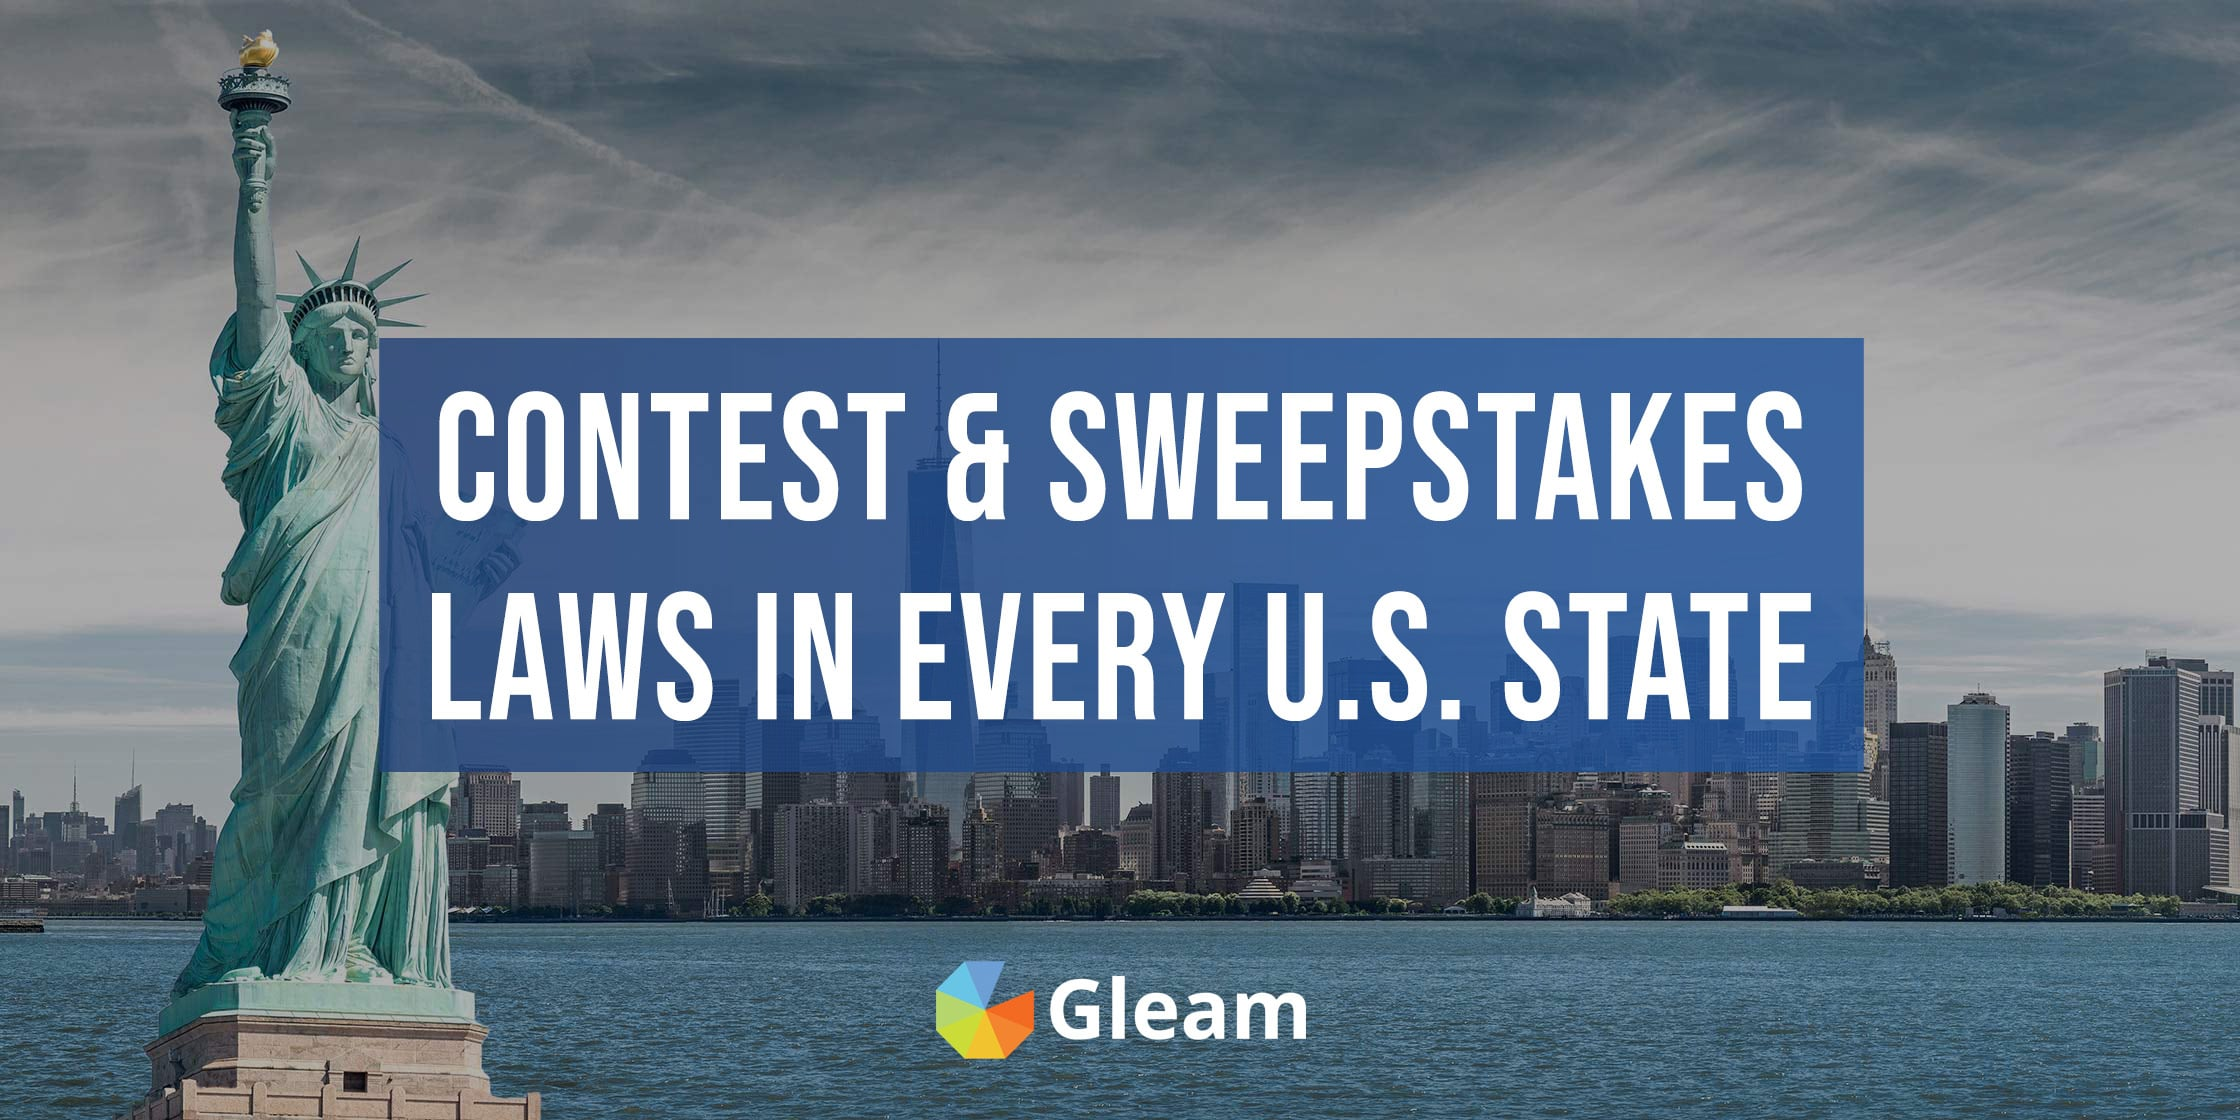 Contest & Sweepstakes Laws By State